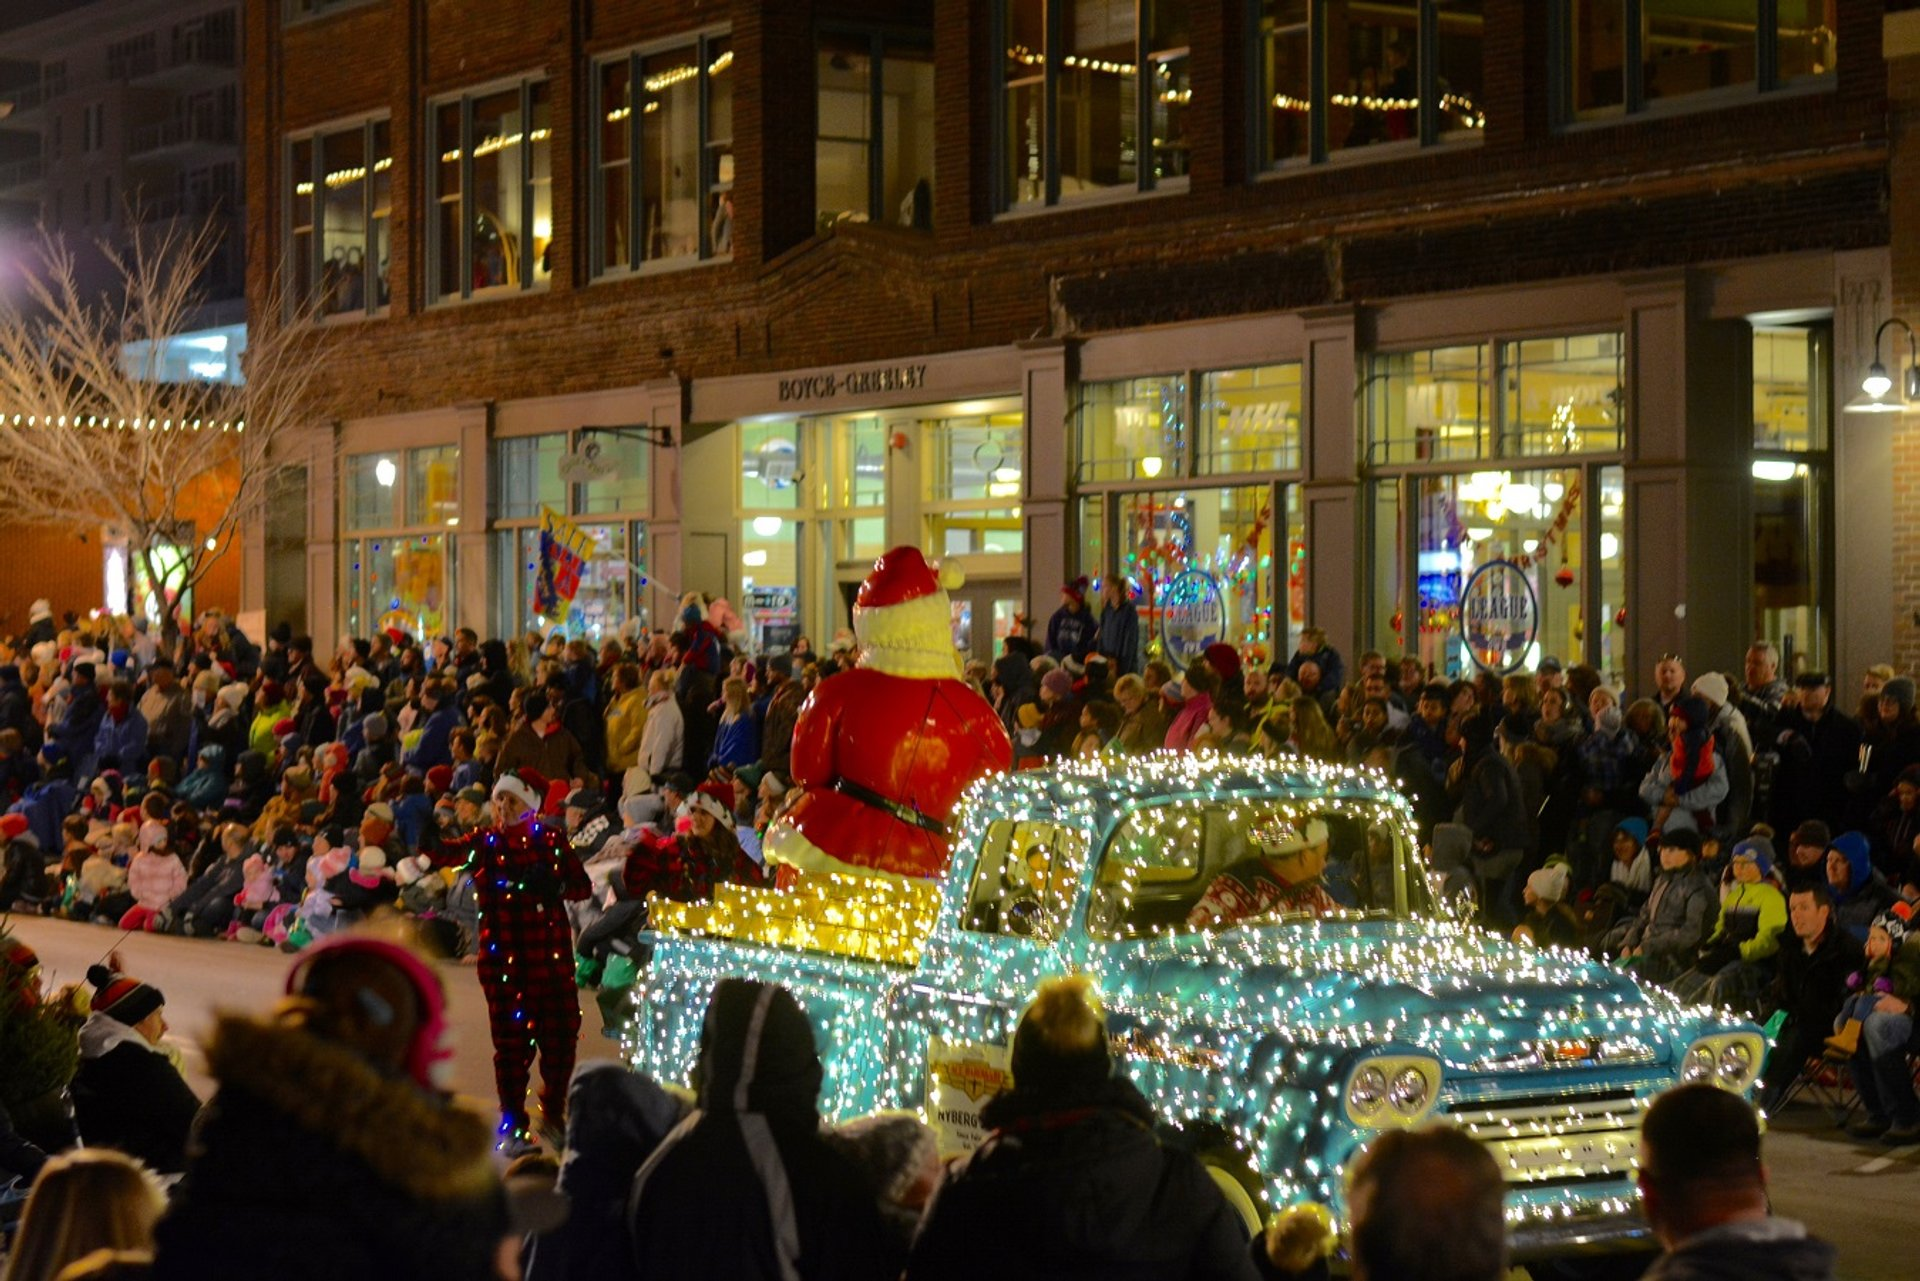 Sioux Falls Parade of Lights in South Dakota 2020 - Best Time